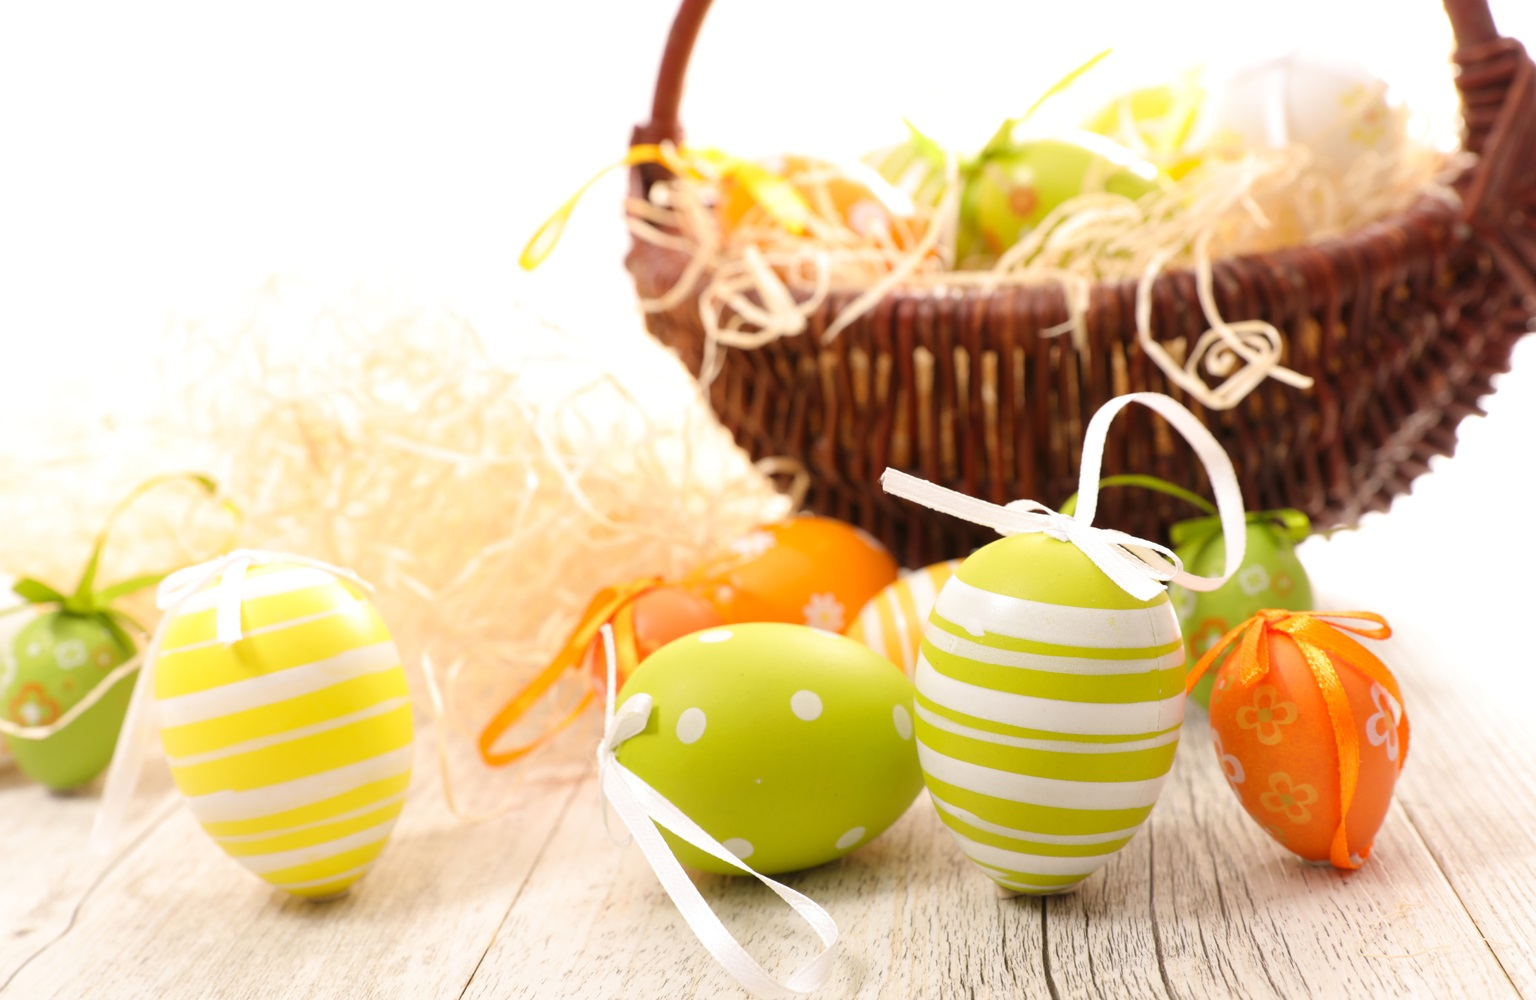 Get cracking with our Easy Easter craft ideas: Make an Easter basket, paint eggs and more